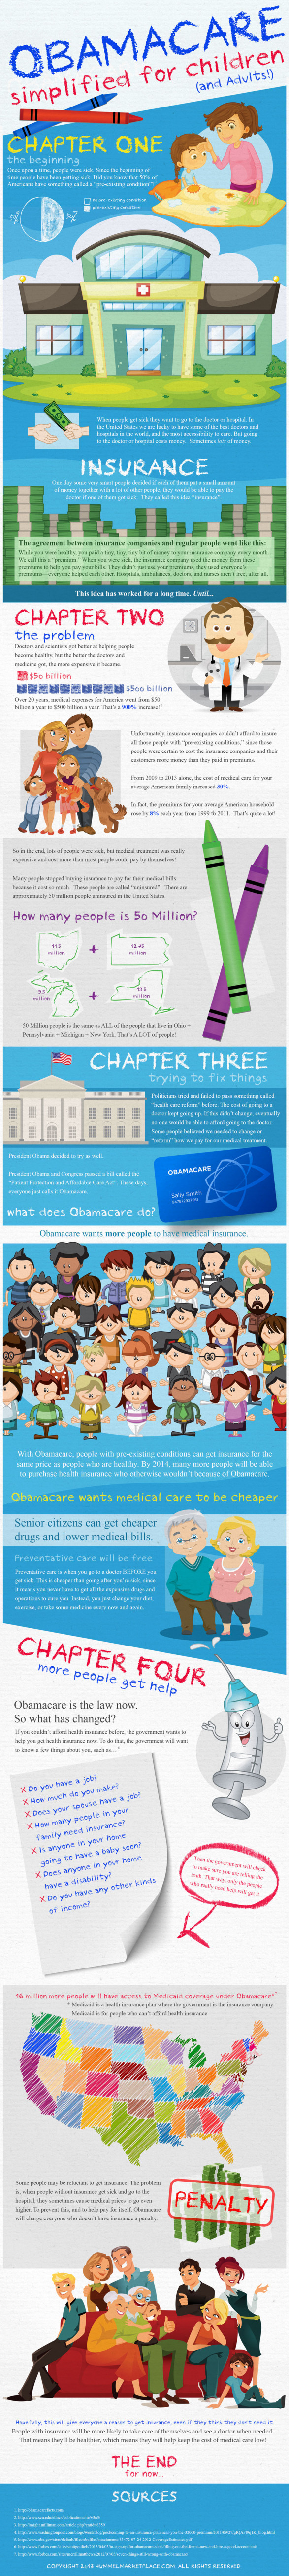 Obamacare Simplified for Children